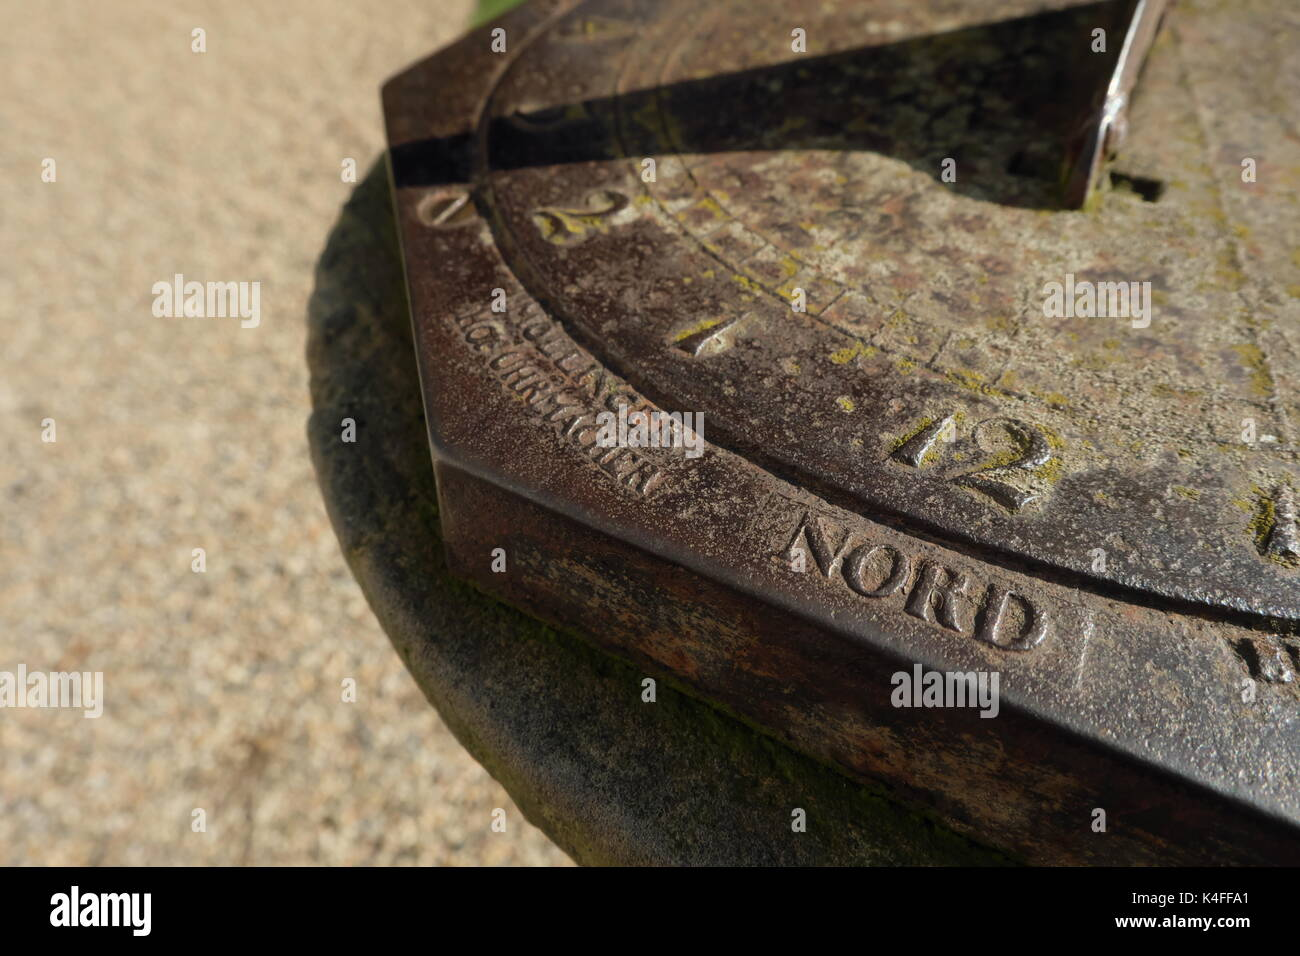 Sundial PfauenInsel, insctiption identifies the maker as the Court Clockmaker MOLLINGER, in 1820. - Stock Image